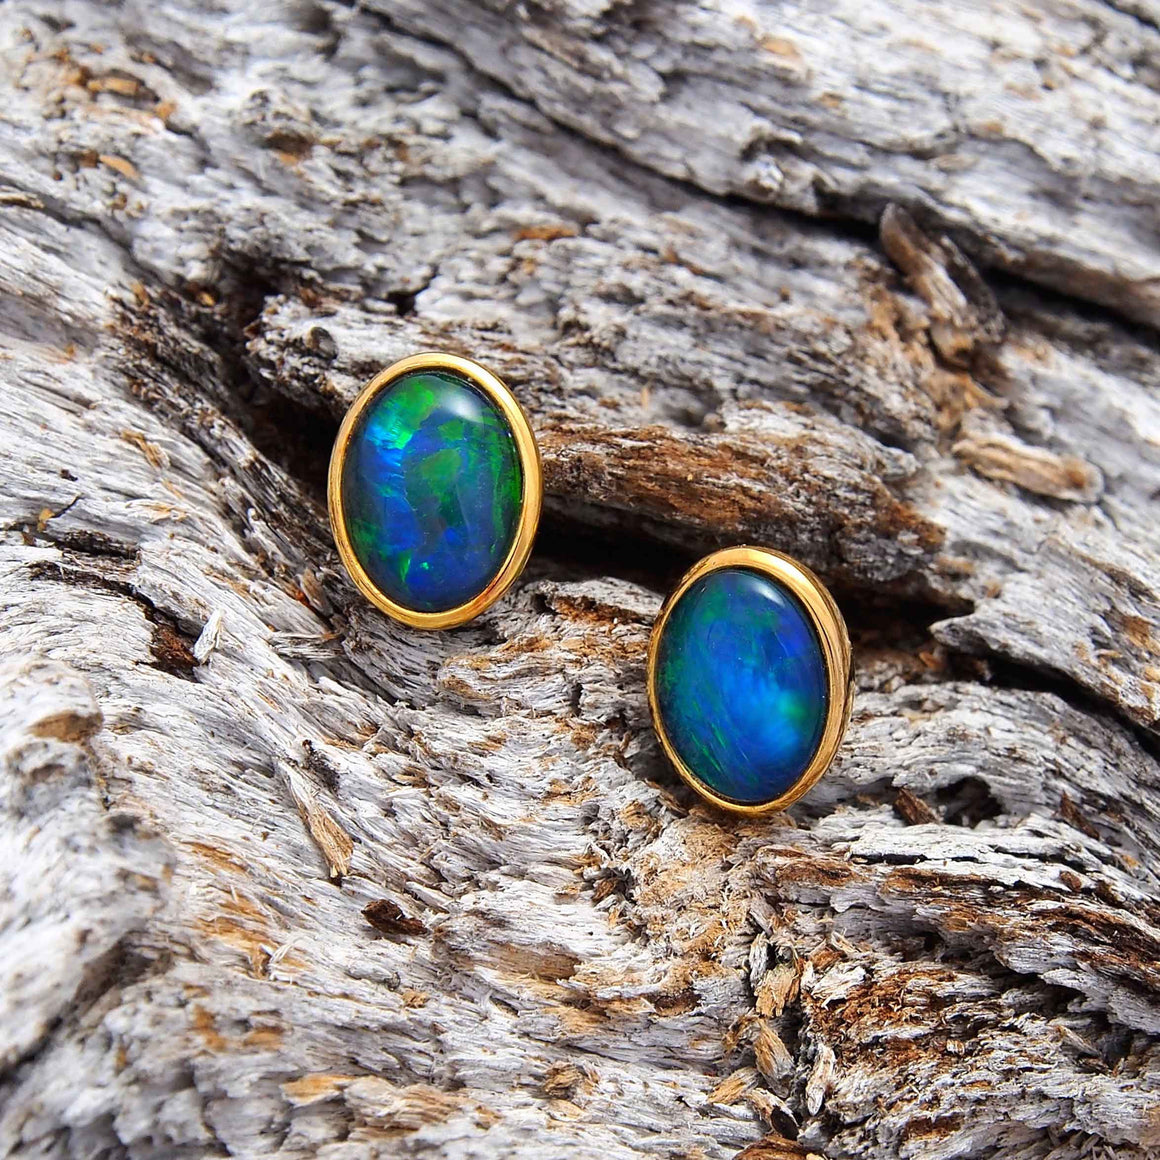 Classic gold plated sterling silver oval stud earrings bezel set with blue and green triplet opals